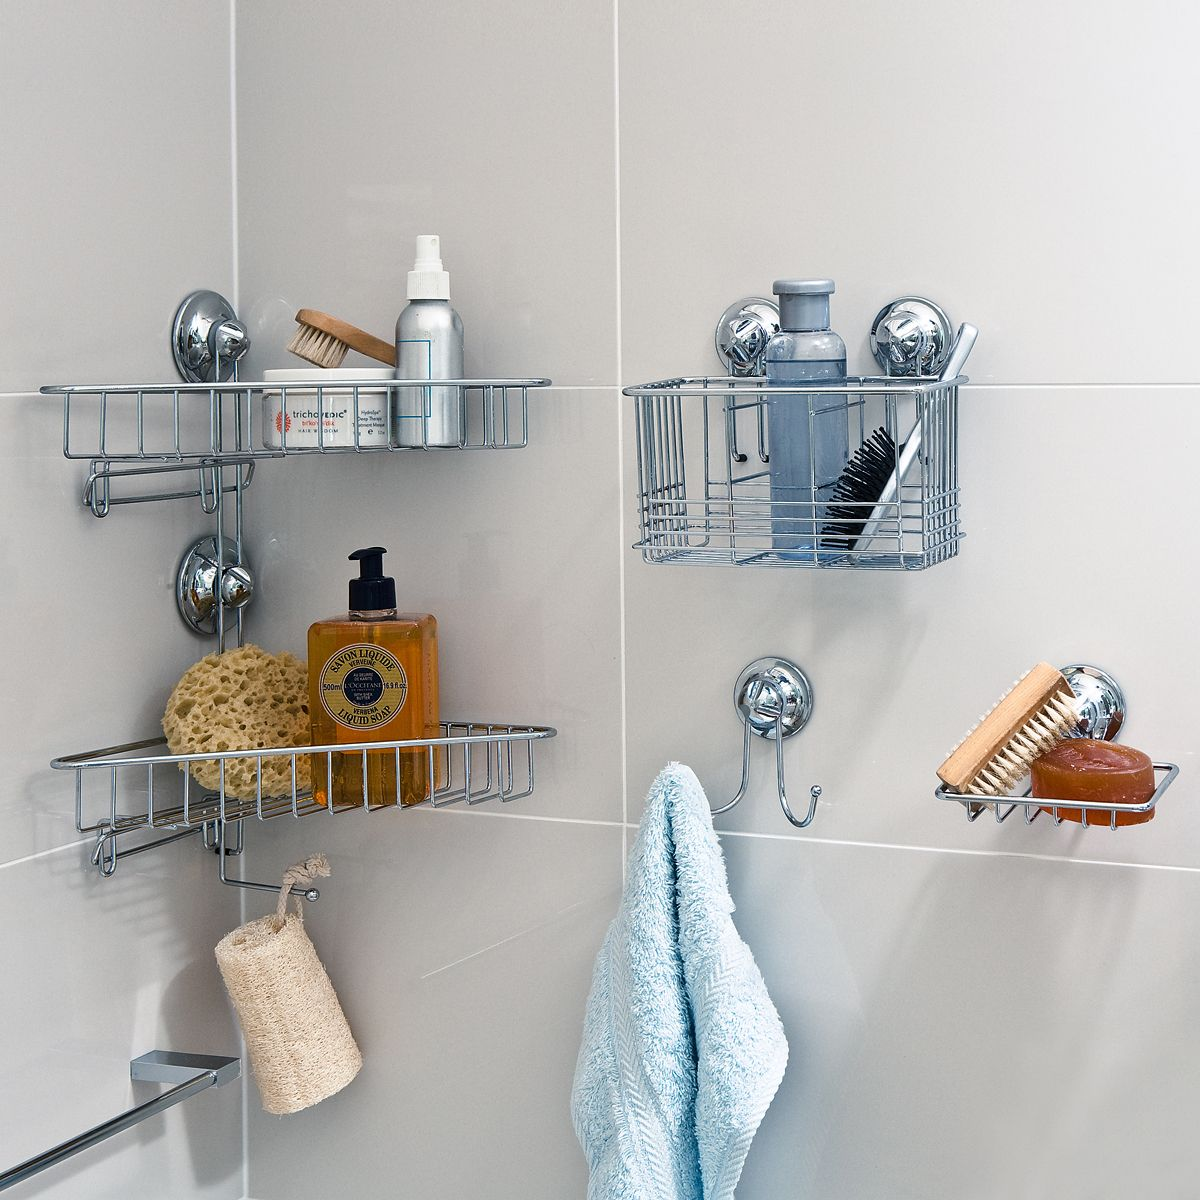 Minimalist Storage Decorations In Small Bathroom listed in